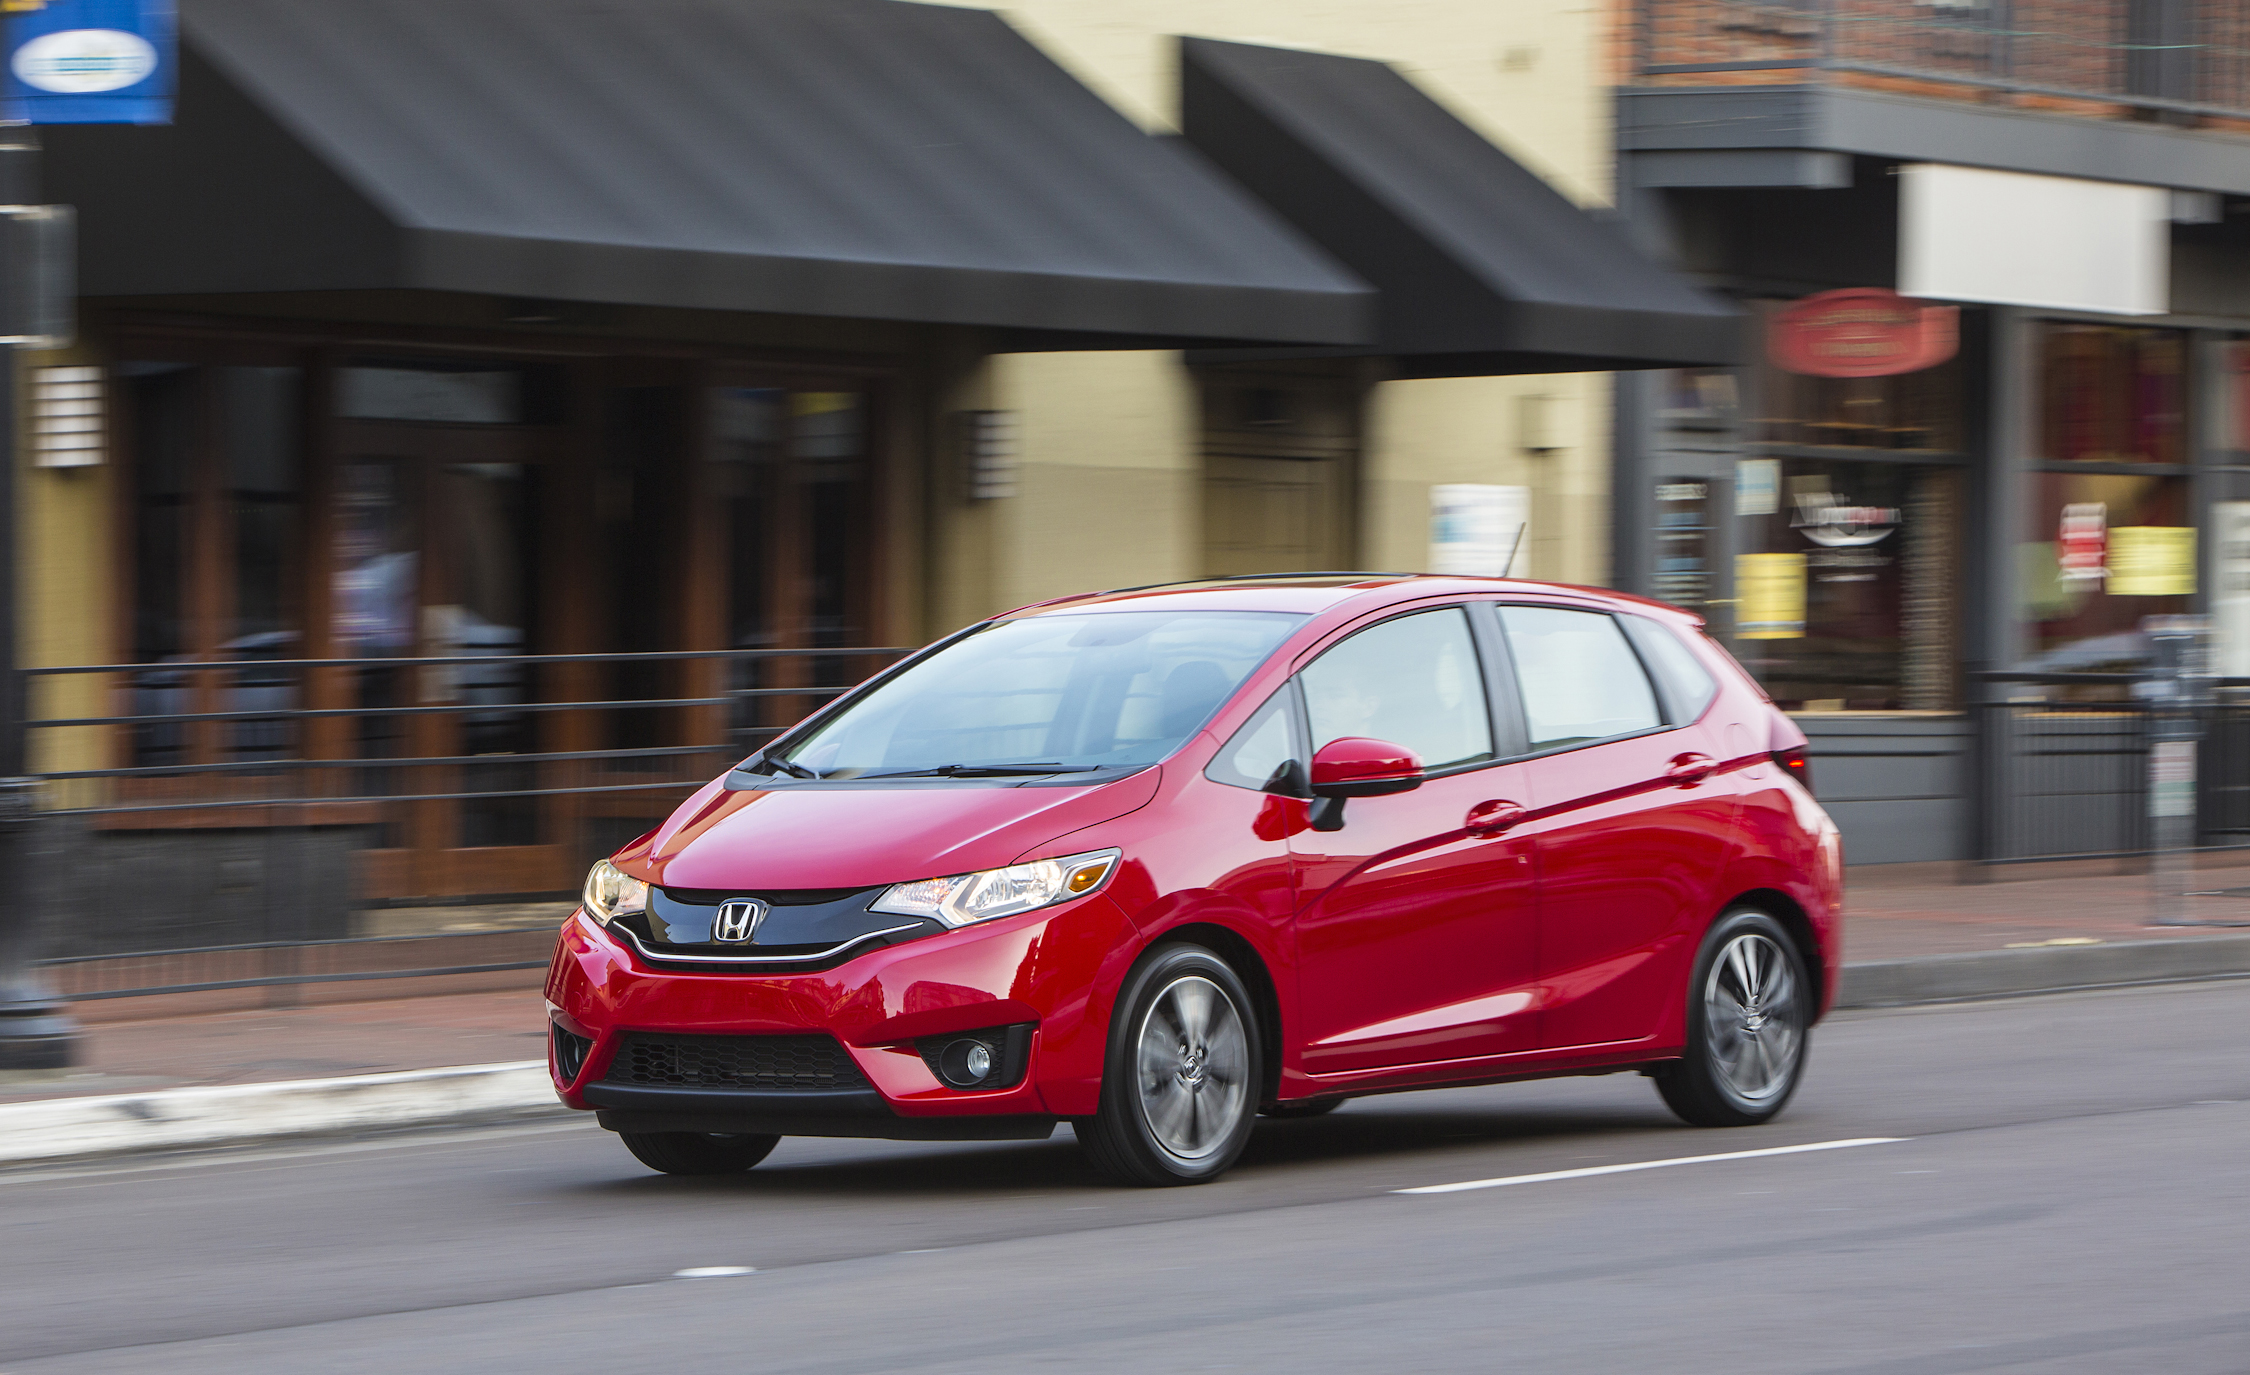 2015 Honda Fit Red